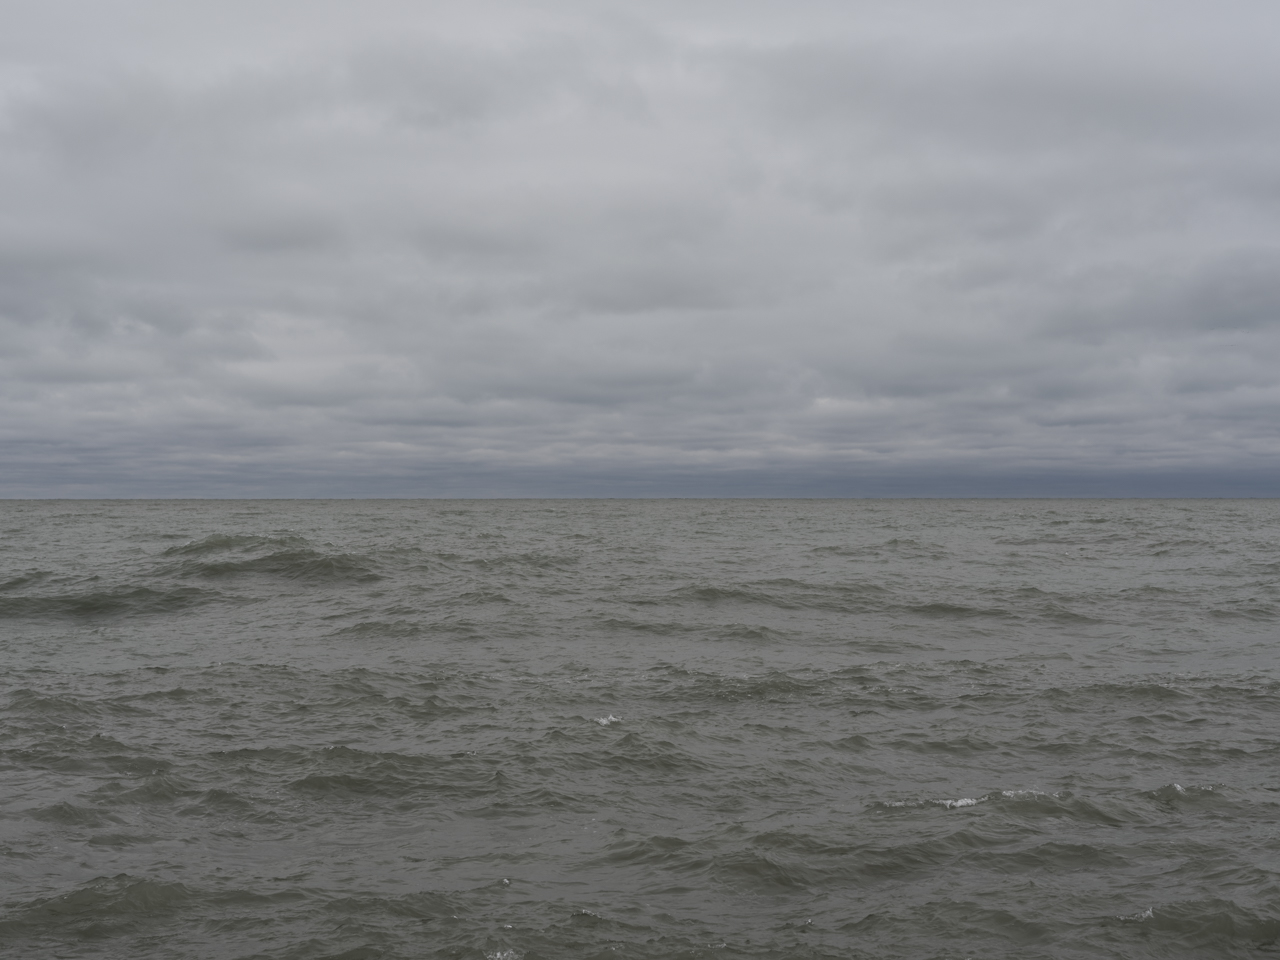 a very gray day on the lake where clouds are fully filling the sky overhead and the waters starting to pick up movment, the waves a green color